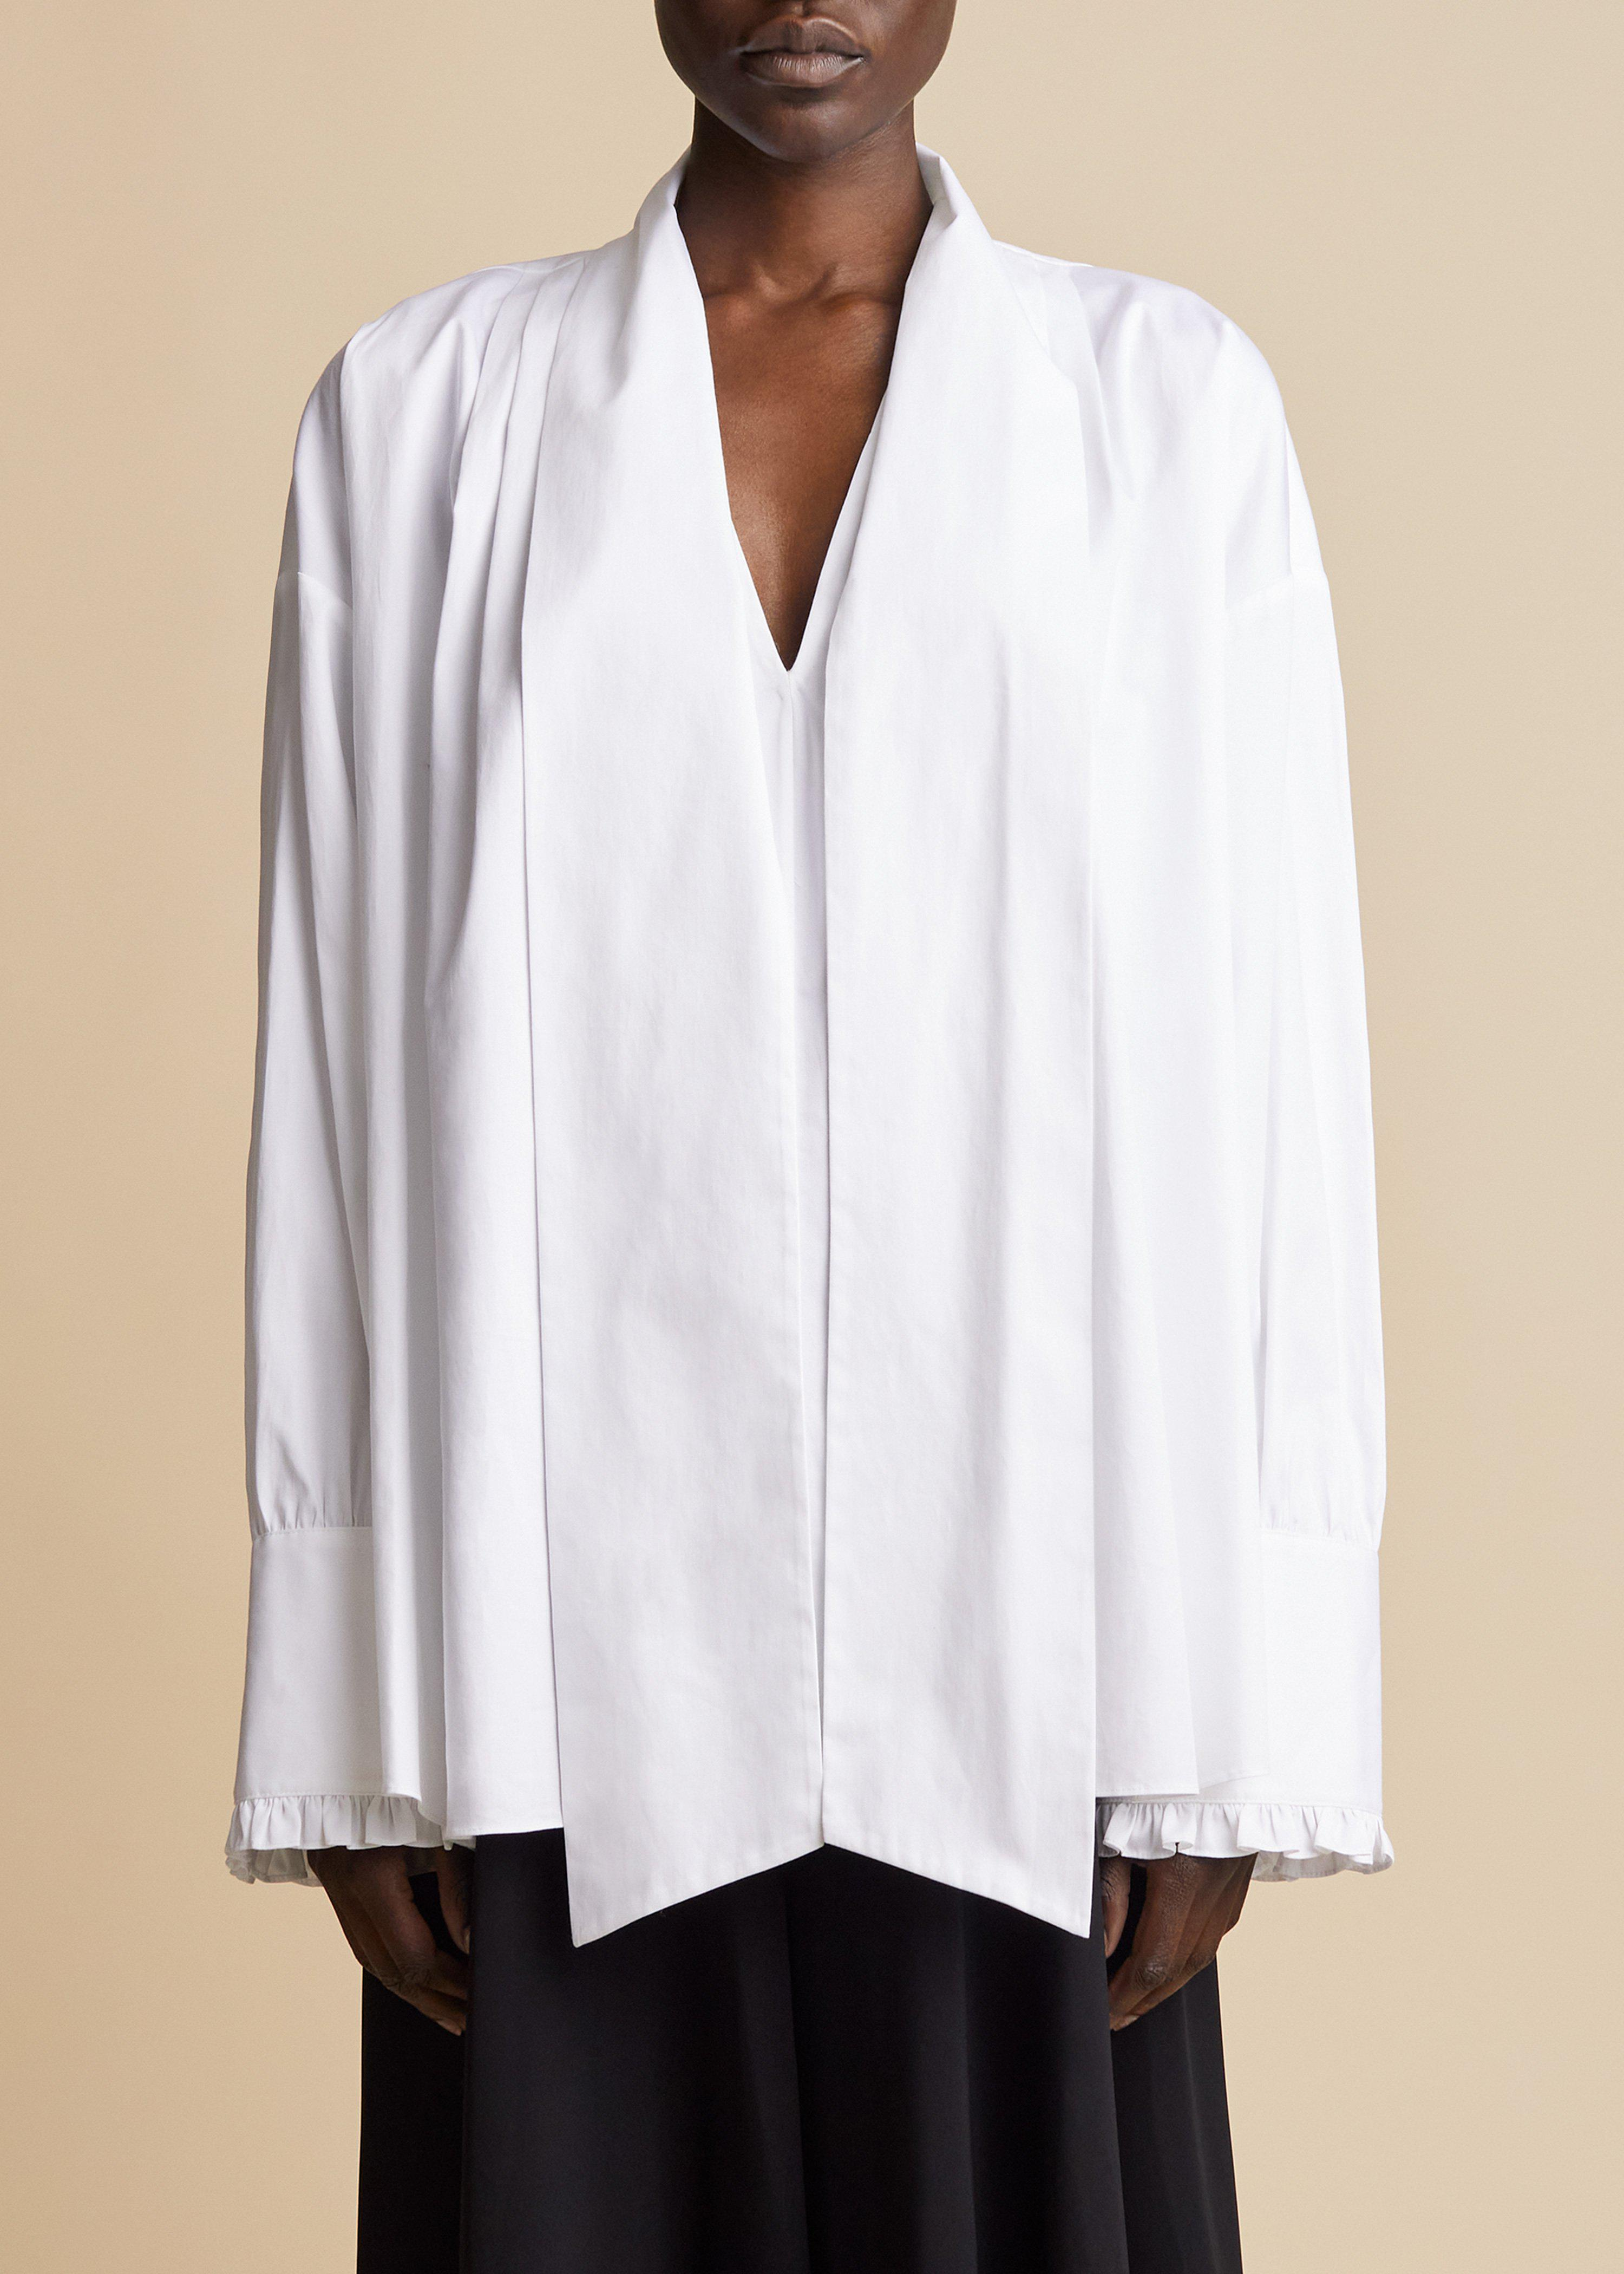 The Fran Top in White